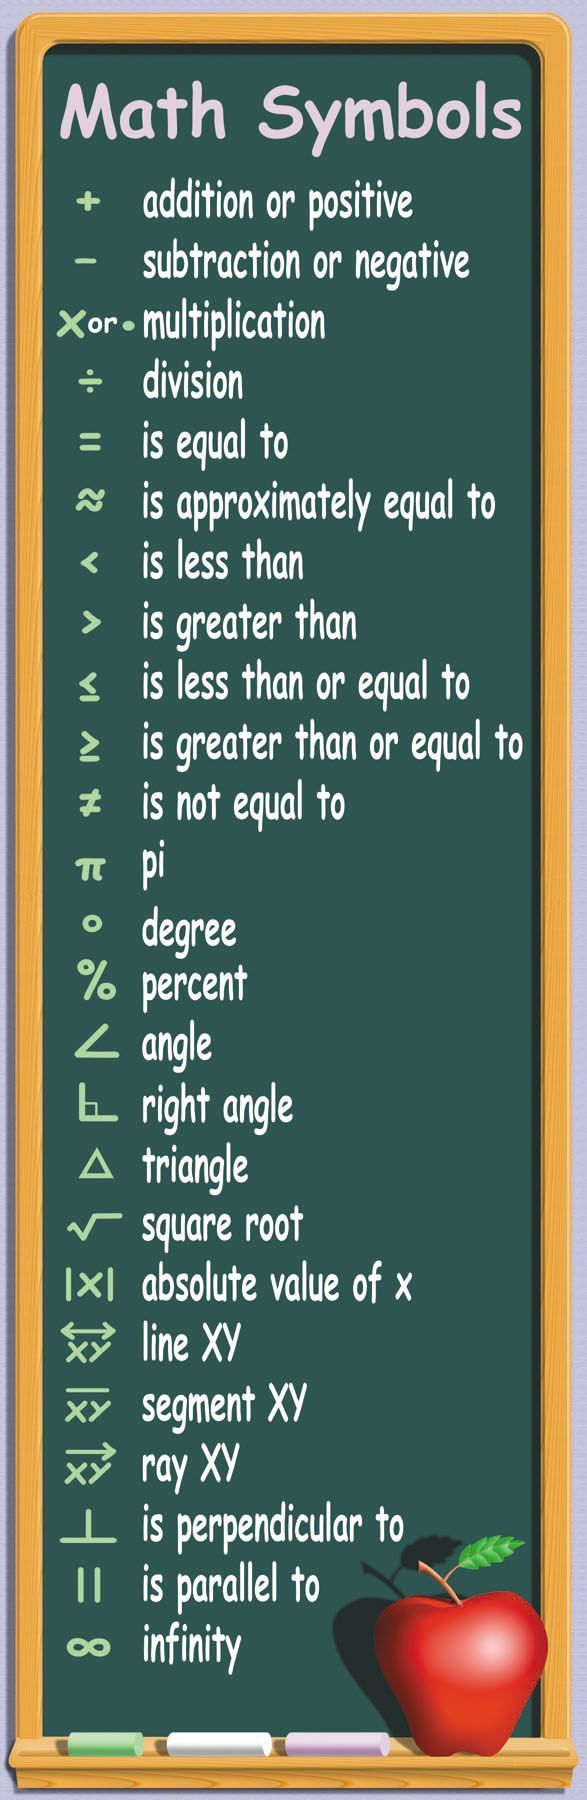 #math classroom poster and banners | School | Classroom Decorations | Math Symbols Colossal Concept Poster ...: